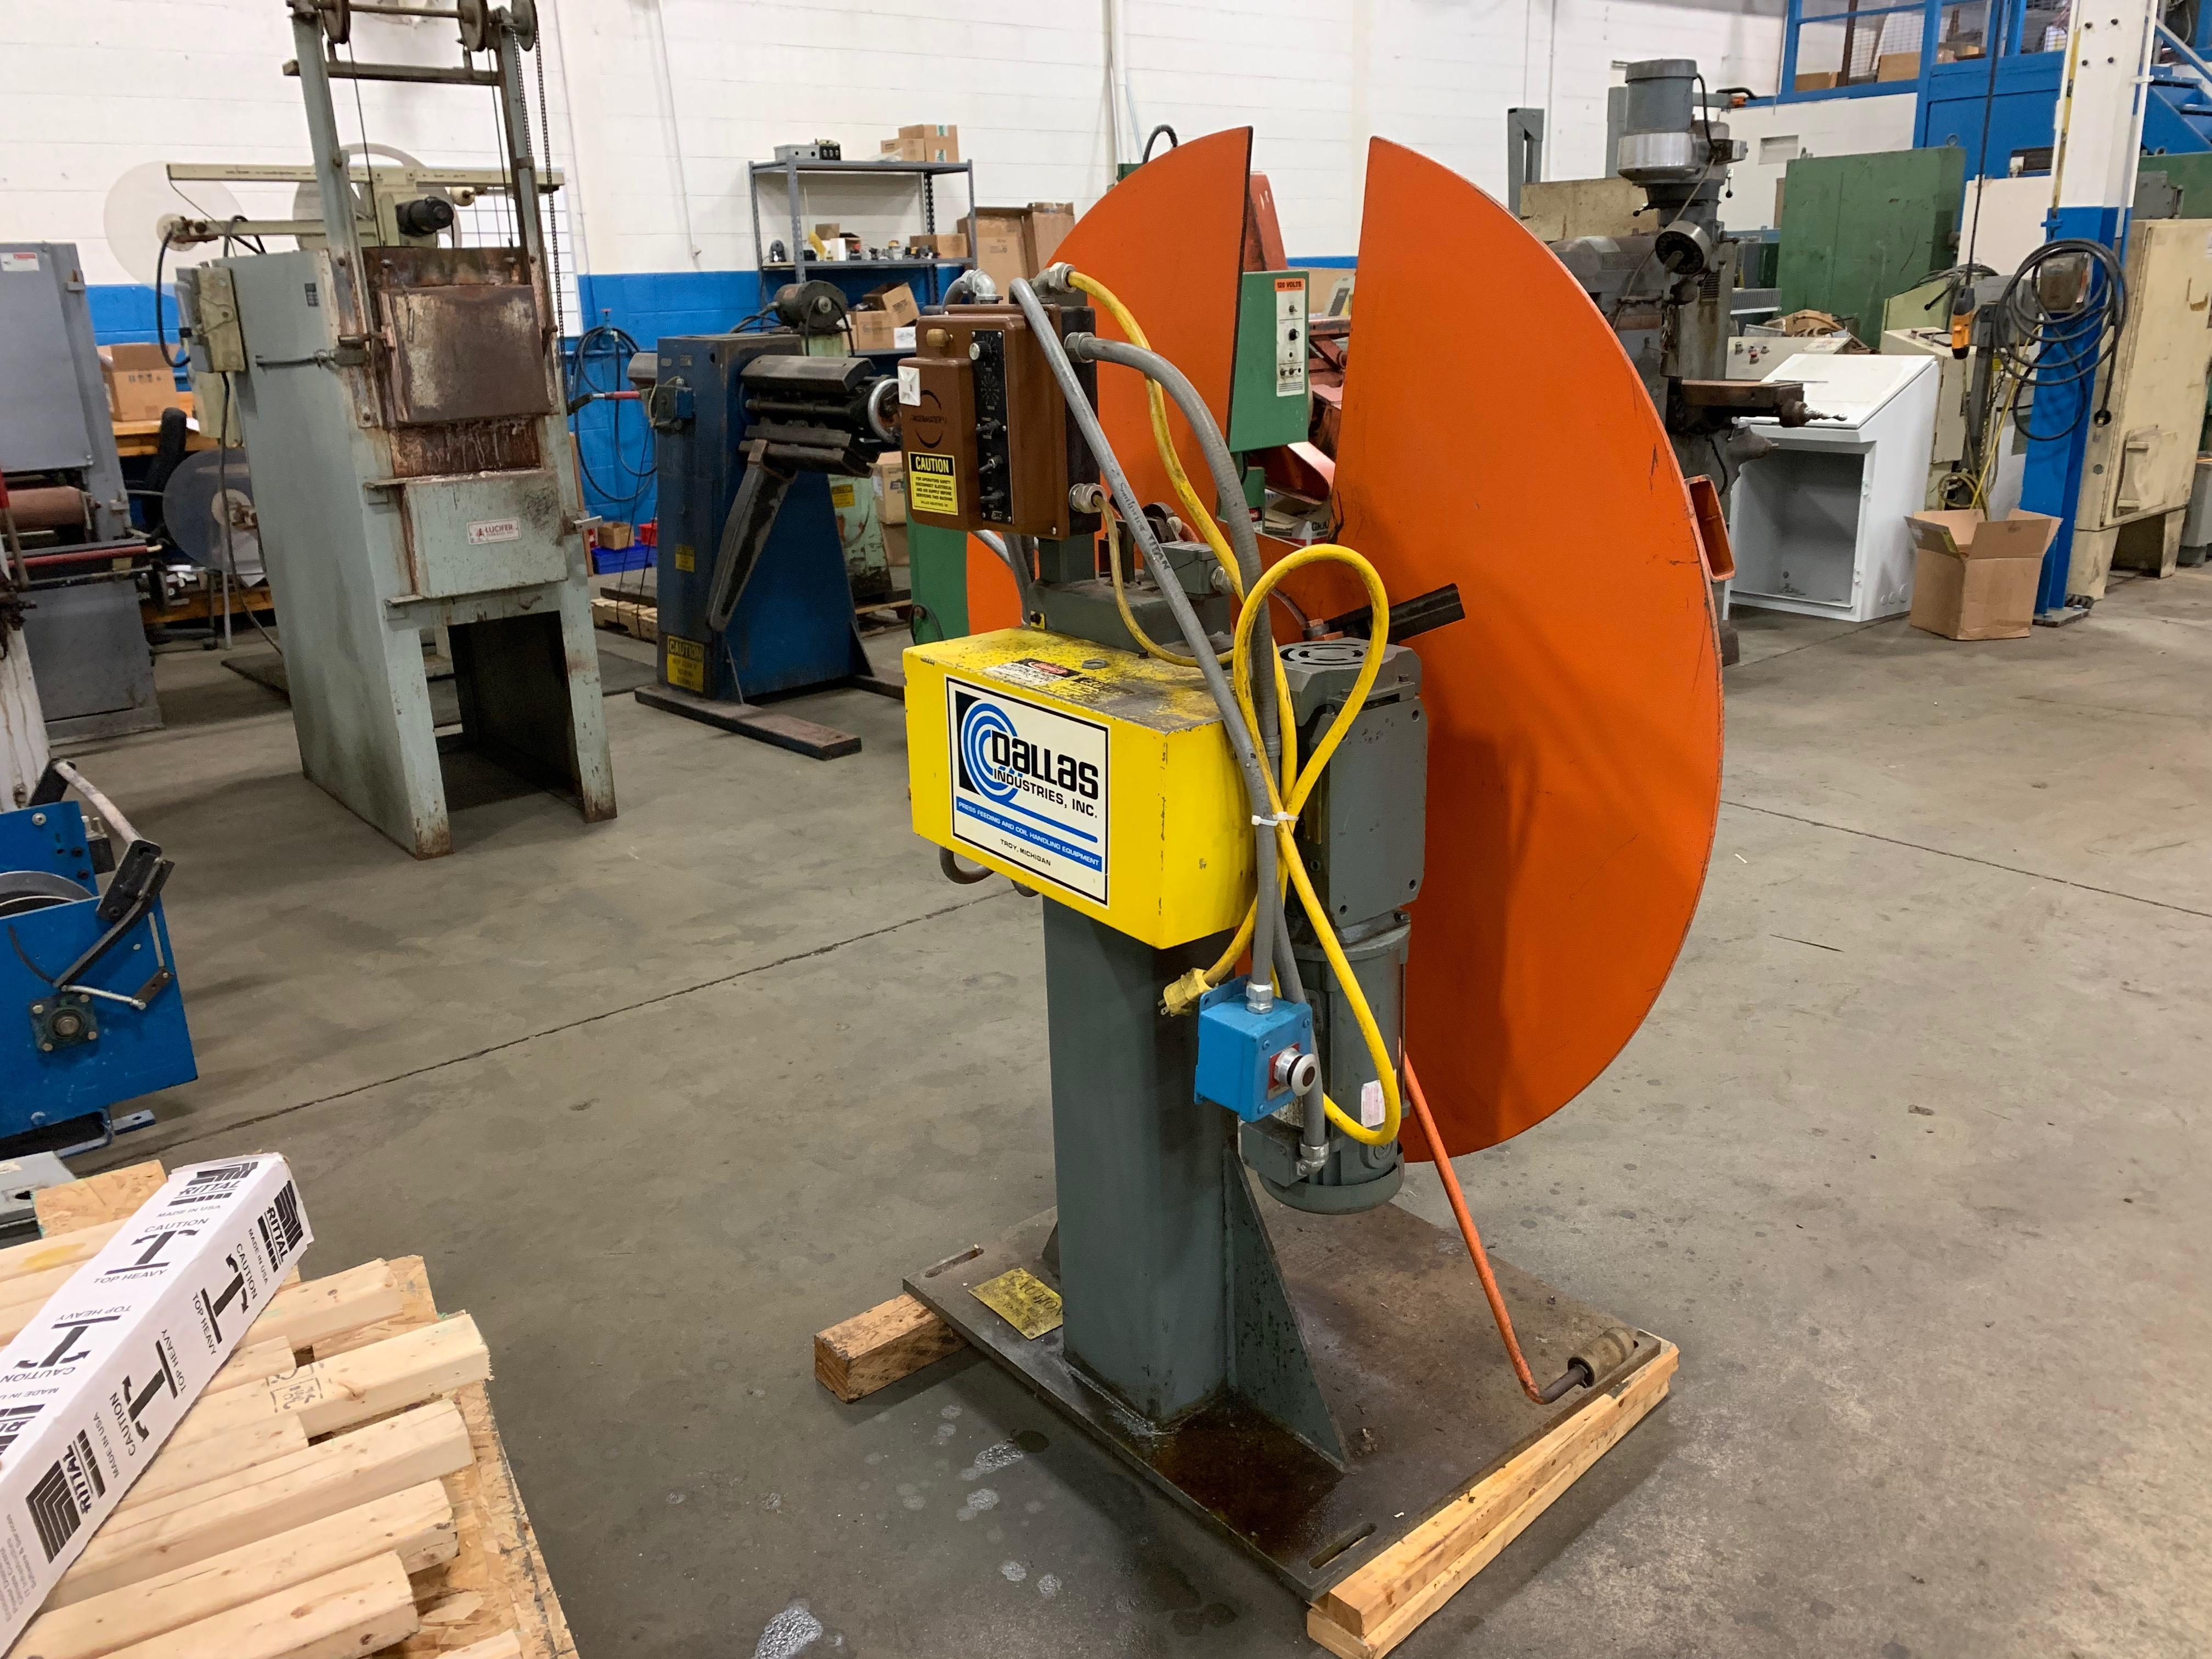 Dallas (Motorized) Centering Reel 1,500 Lbs x 12